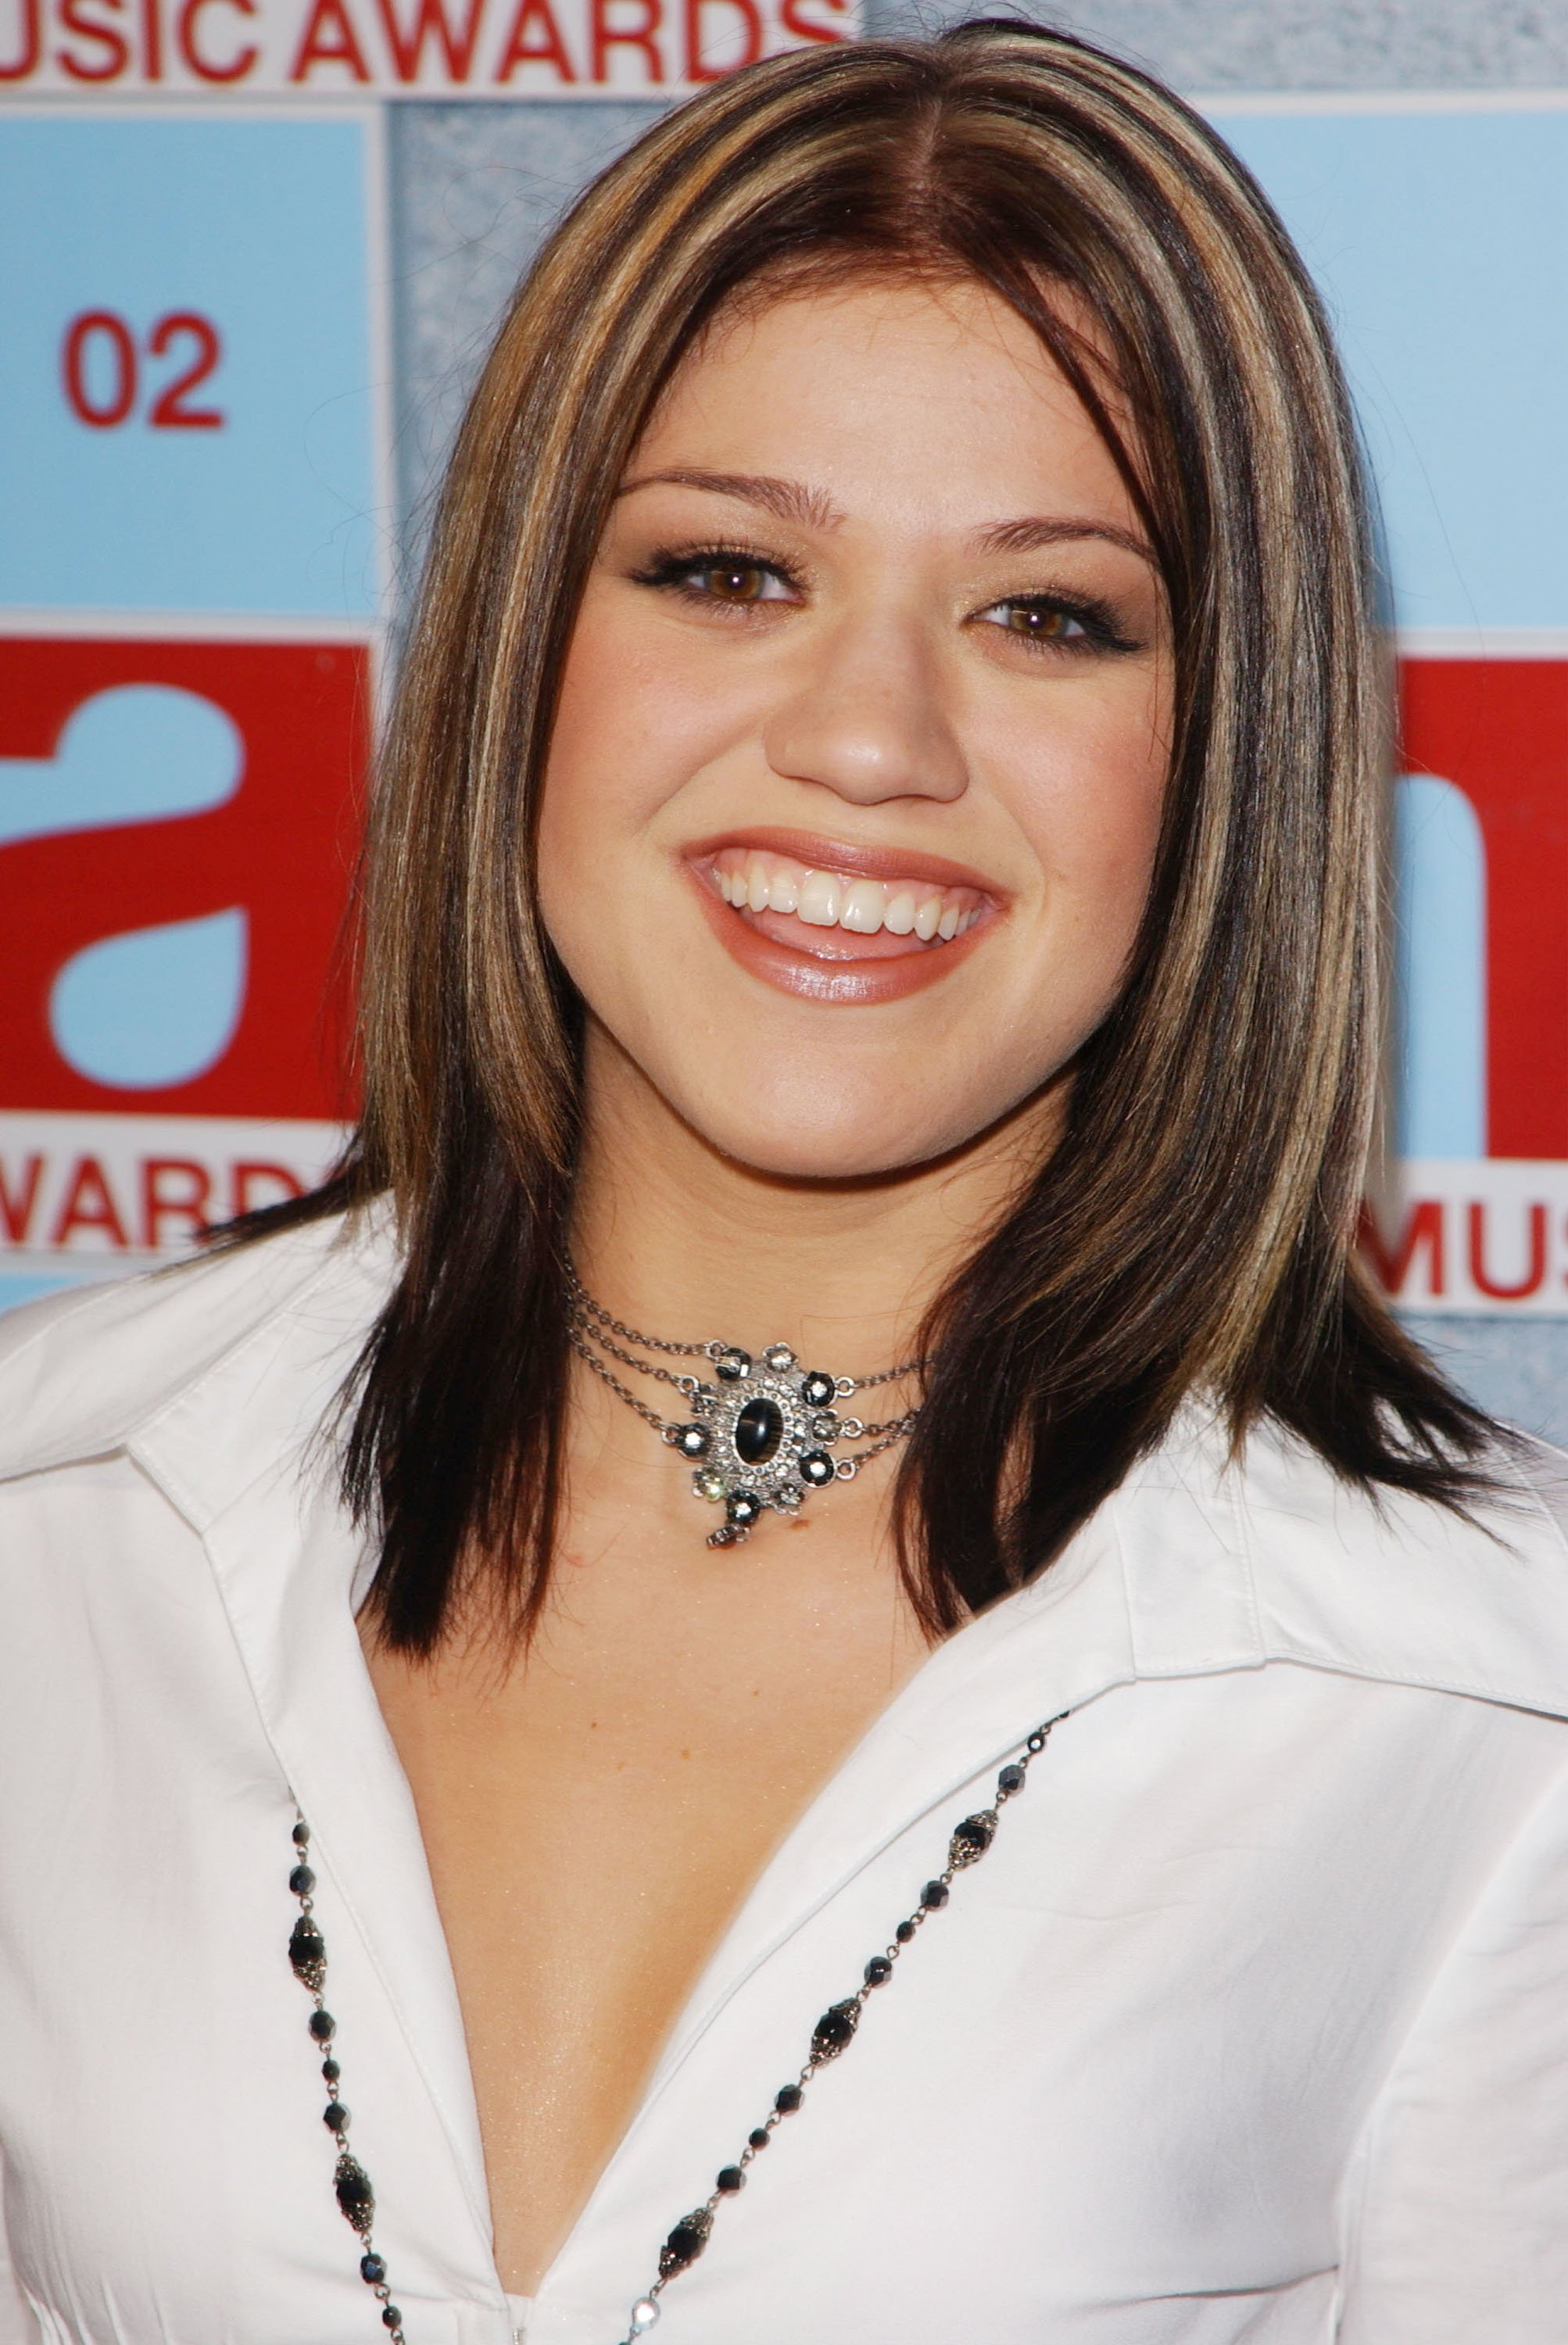 Kelly Clarkson attends the MTV Video Music Awards in New York City on August 29, 2002   Photo: Getty Images